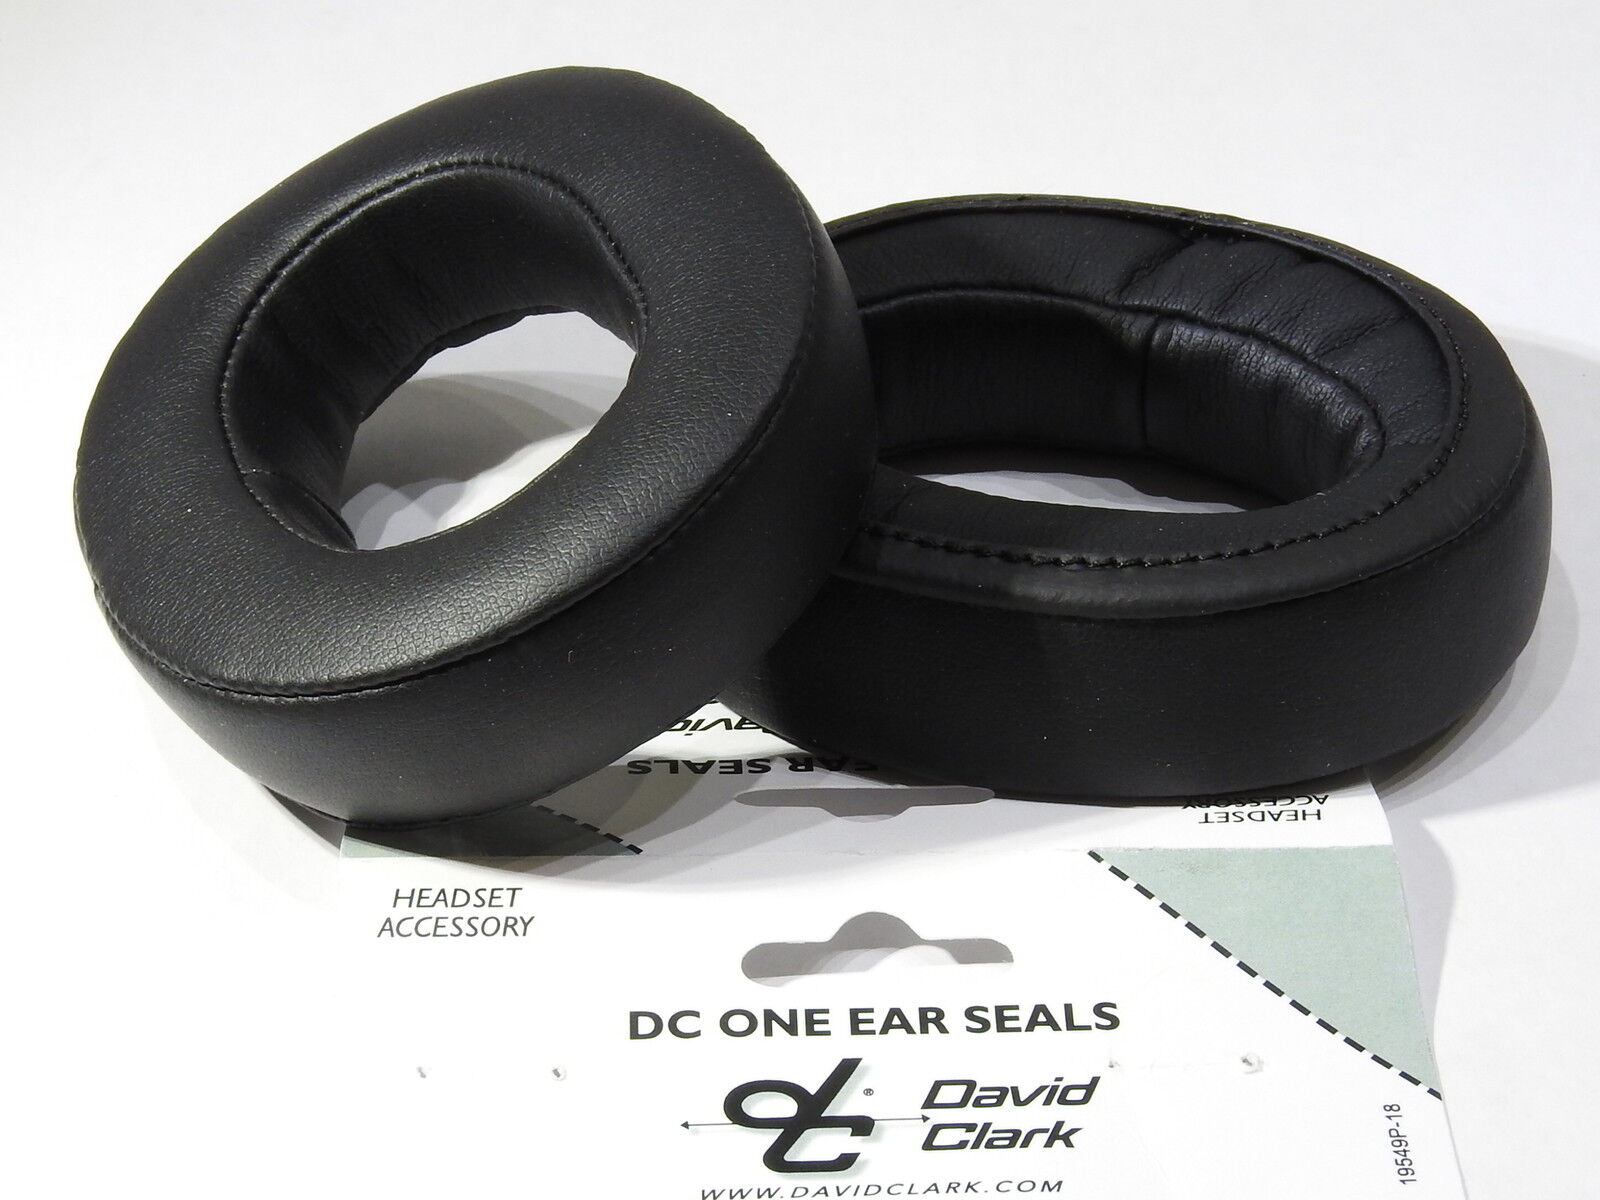 GENUINE DAVID CLARK DC ONE EAR SEALS  p/n  15976G-07 1 Pair in Leatherette